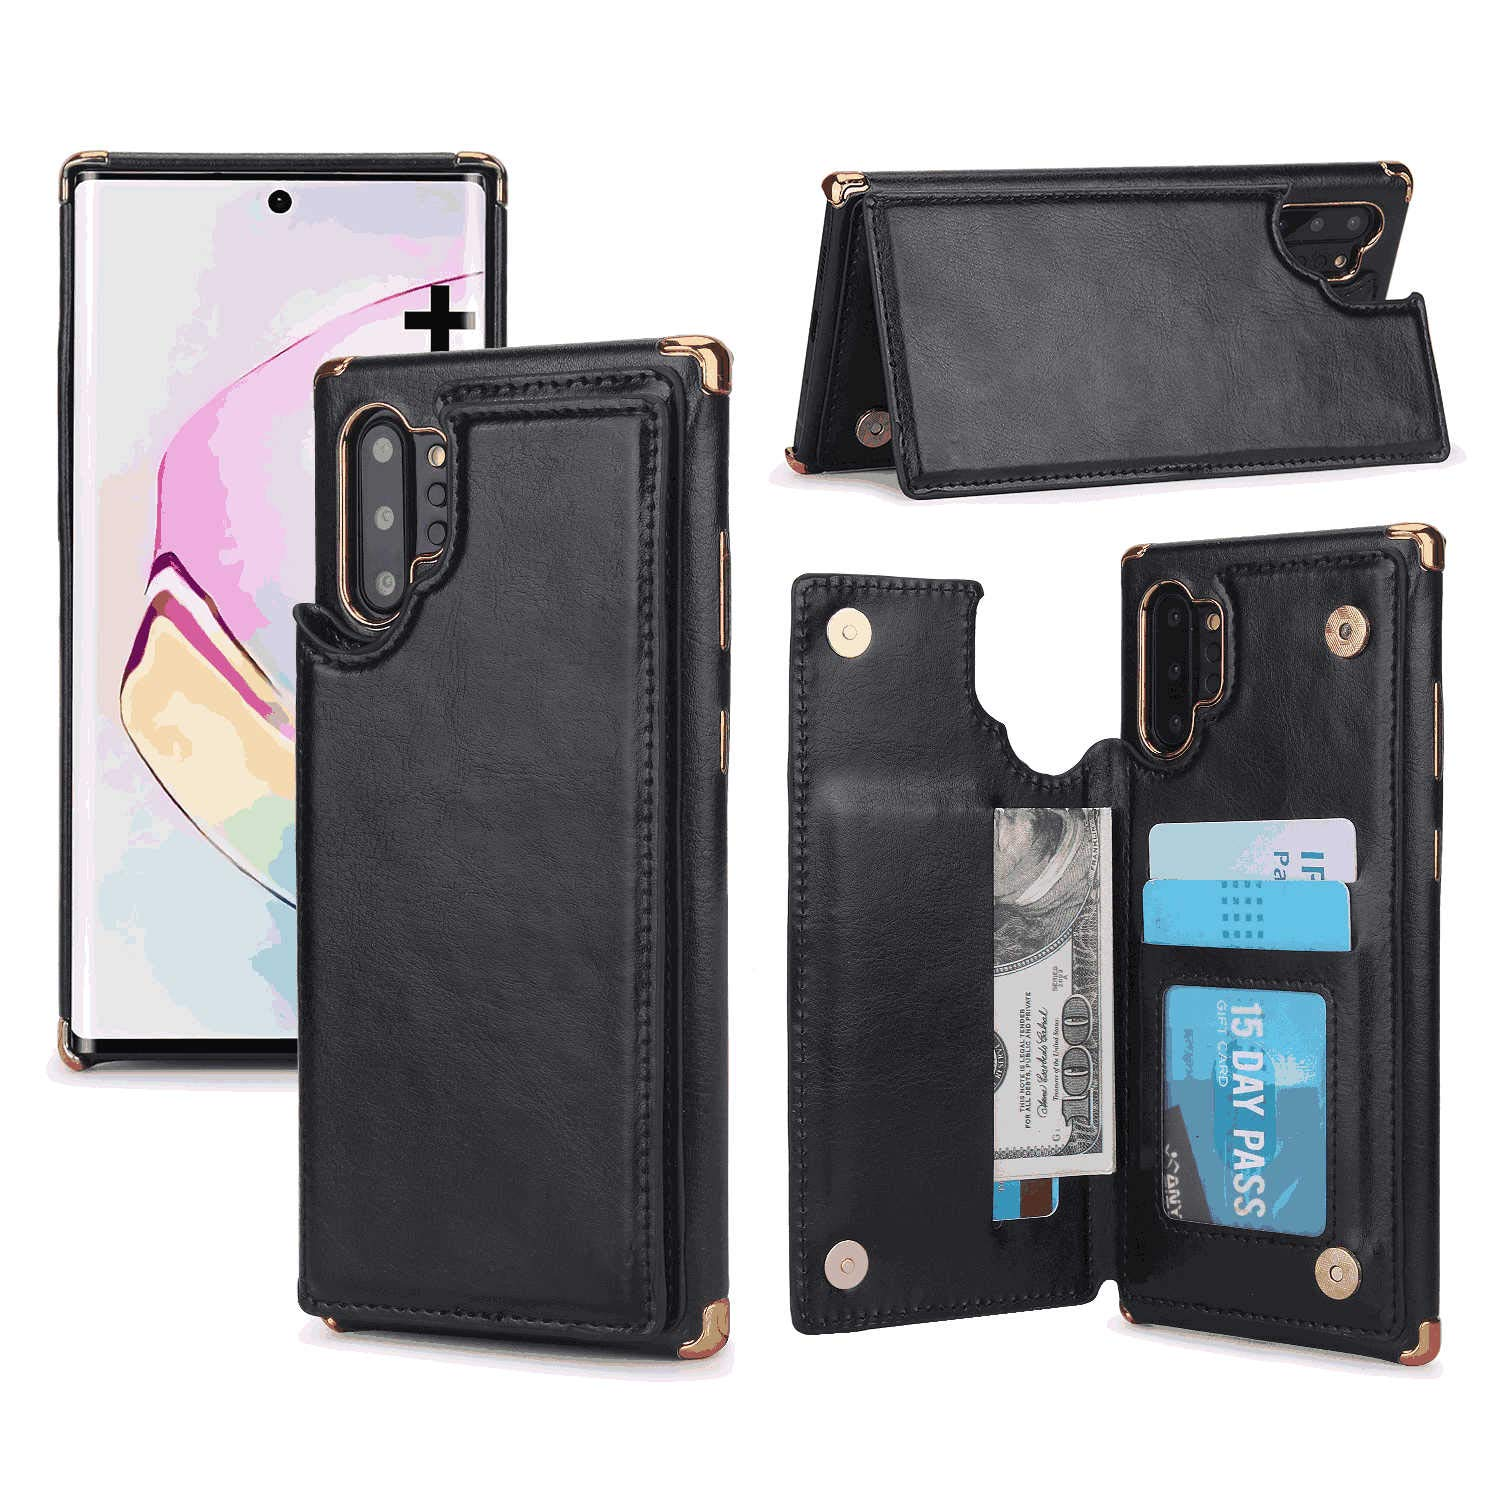 Cover for iPhone 7 Plus Leather Kickstand Card Holders Wallet Cover Extra-Durable Business with Free Waterproof-Bag Business iPhone 7 Plus Flip Case